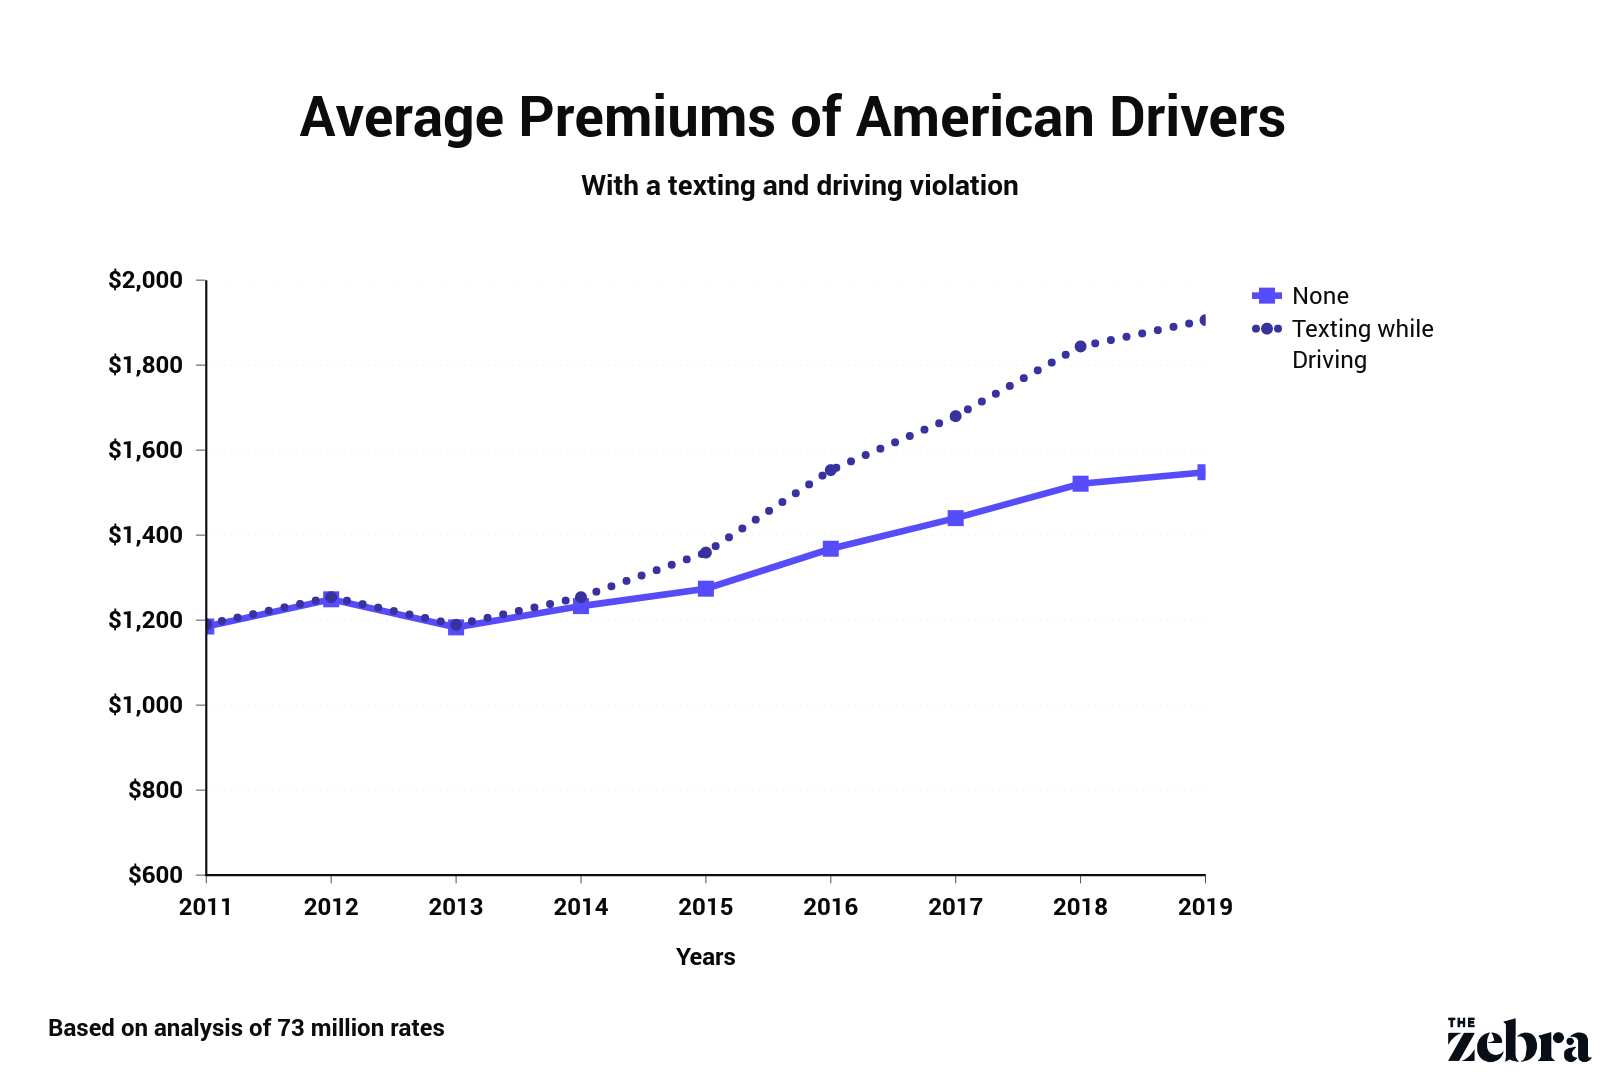 yearly change in car insurance premiums after a texting and driving violation